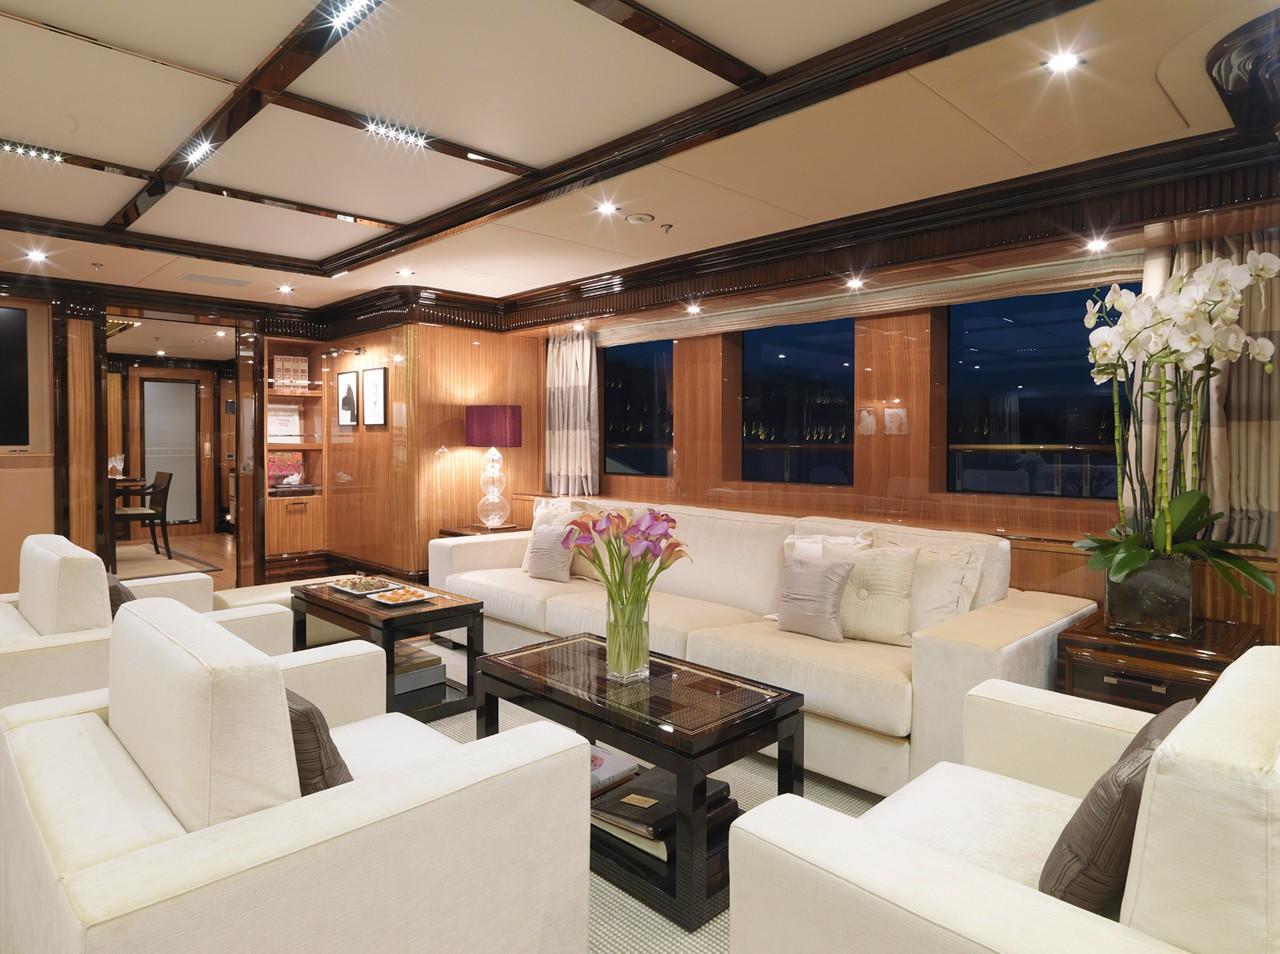 main deck saloon seating area with large couches at night